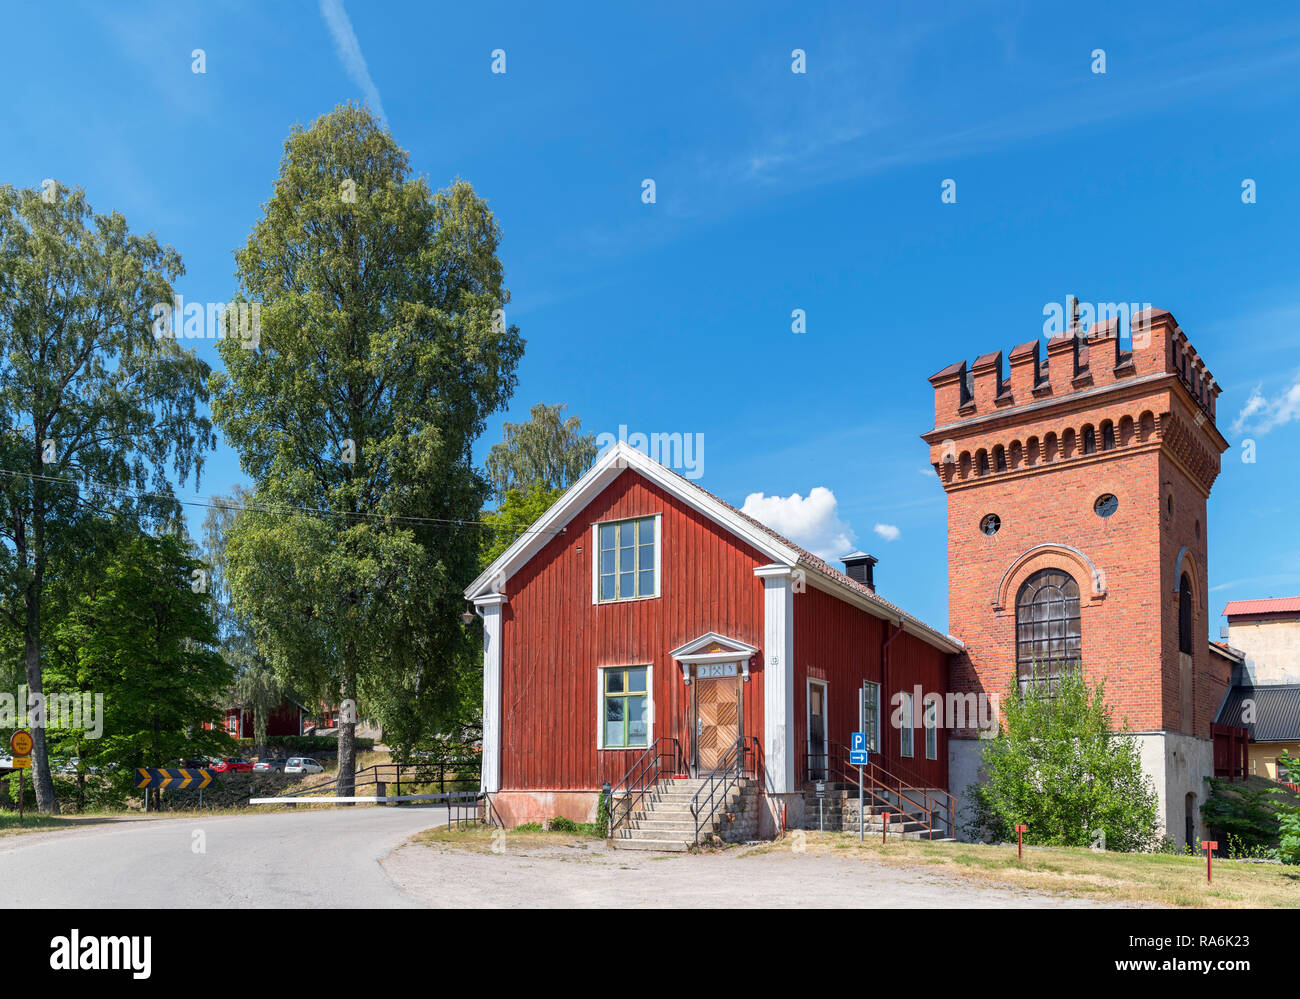 The Sala Silver Mine (Sala silvergruva), an open air museum in Sala, Västmanland, Sweden - Stock Image